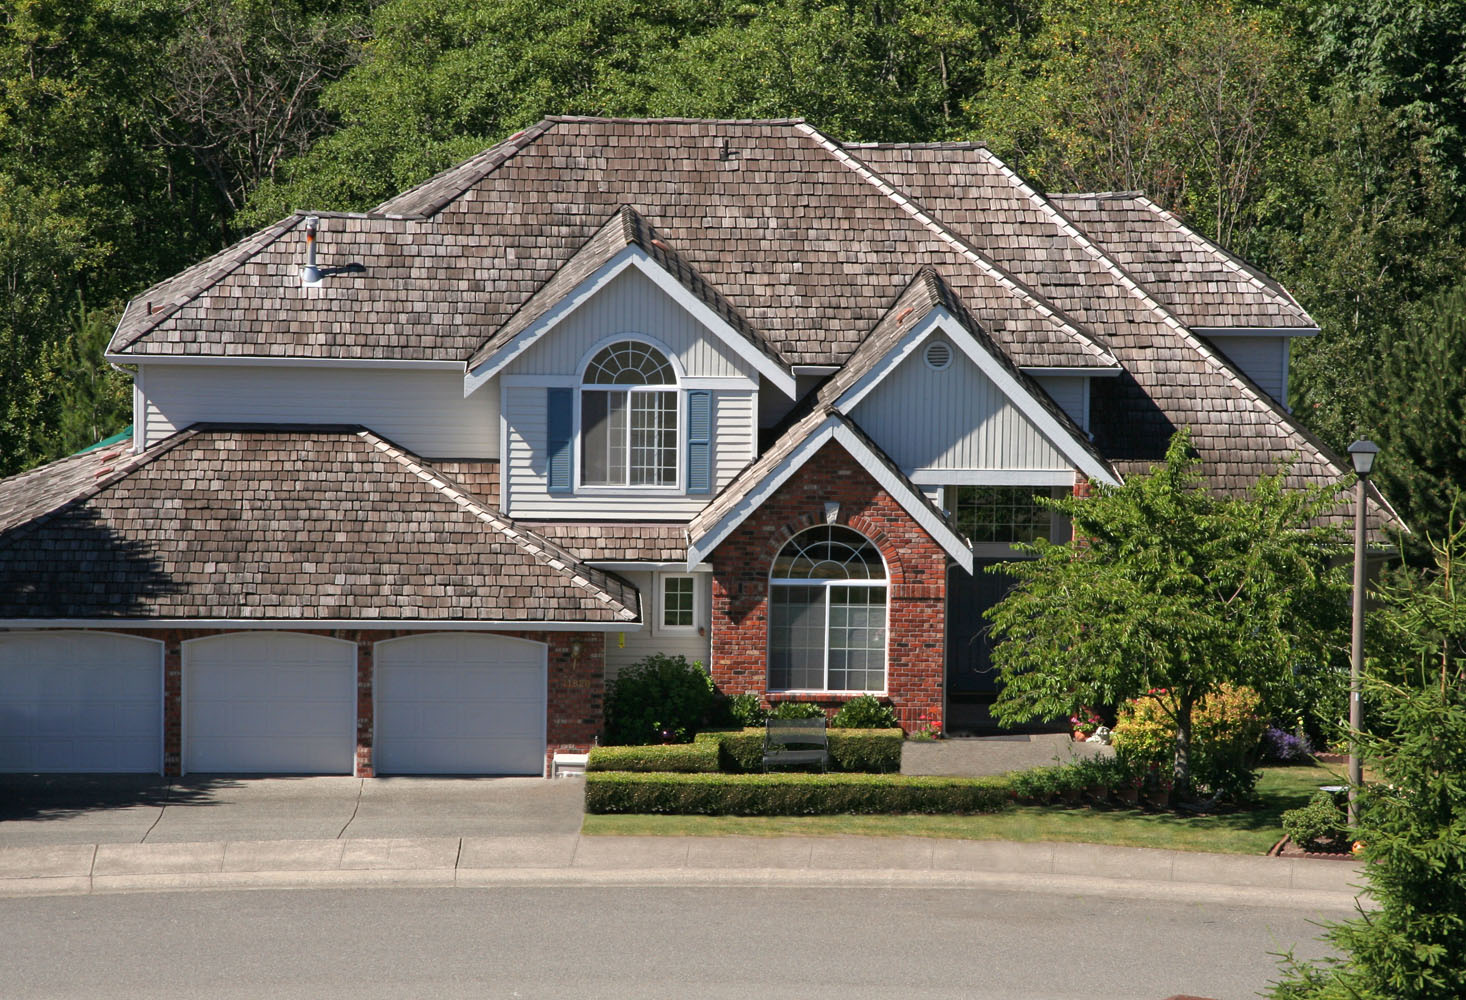 Home with 3-stall garage, covered entryway, manicured lawn & large cedar shake roof Keyprime: cedar shake roofing company